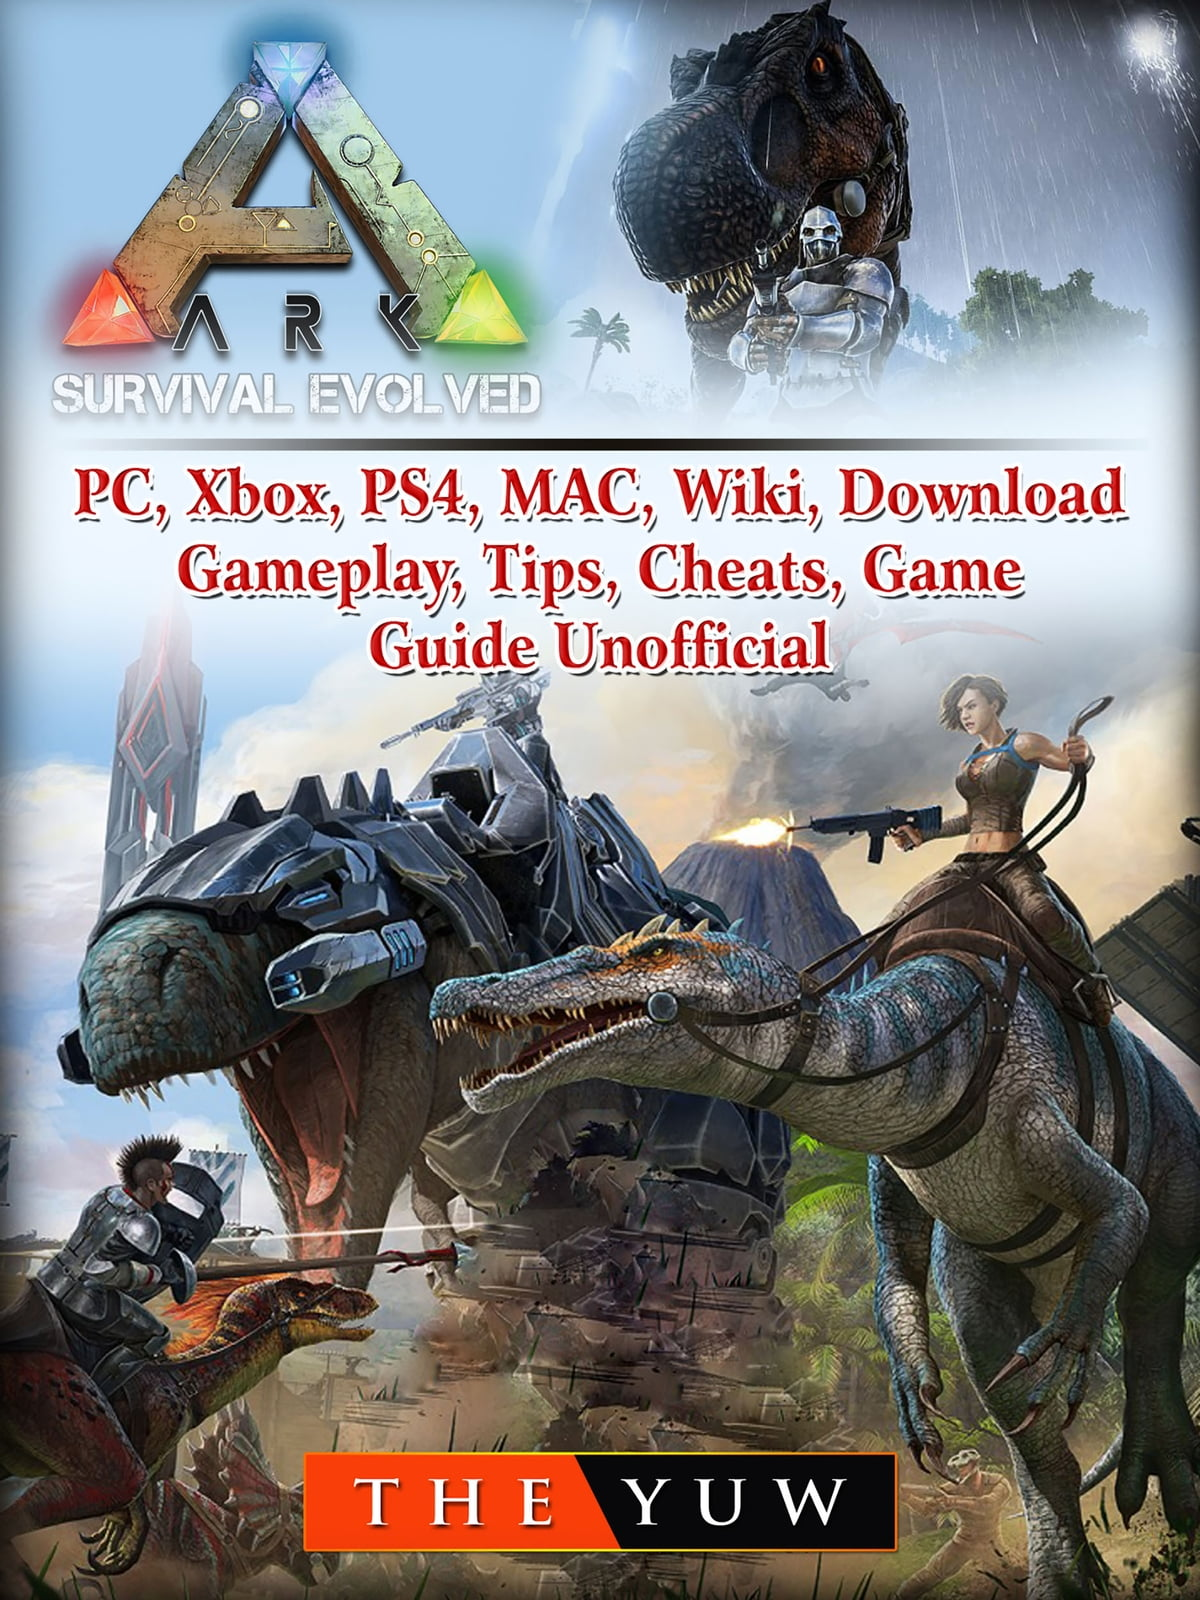 Ark Survival Evolved, PC, Xbox, PS4, MAC, Wiki, Download, Gameplay, Tips,  Cheats, Game Guide Unofficial ebook by The Yuw - Rakuten Kobo